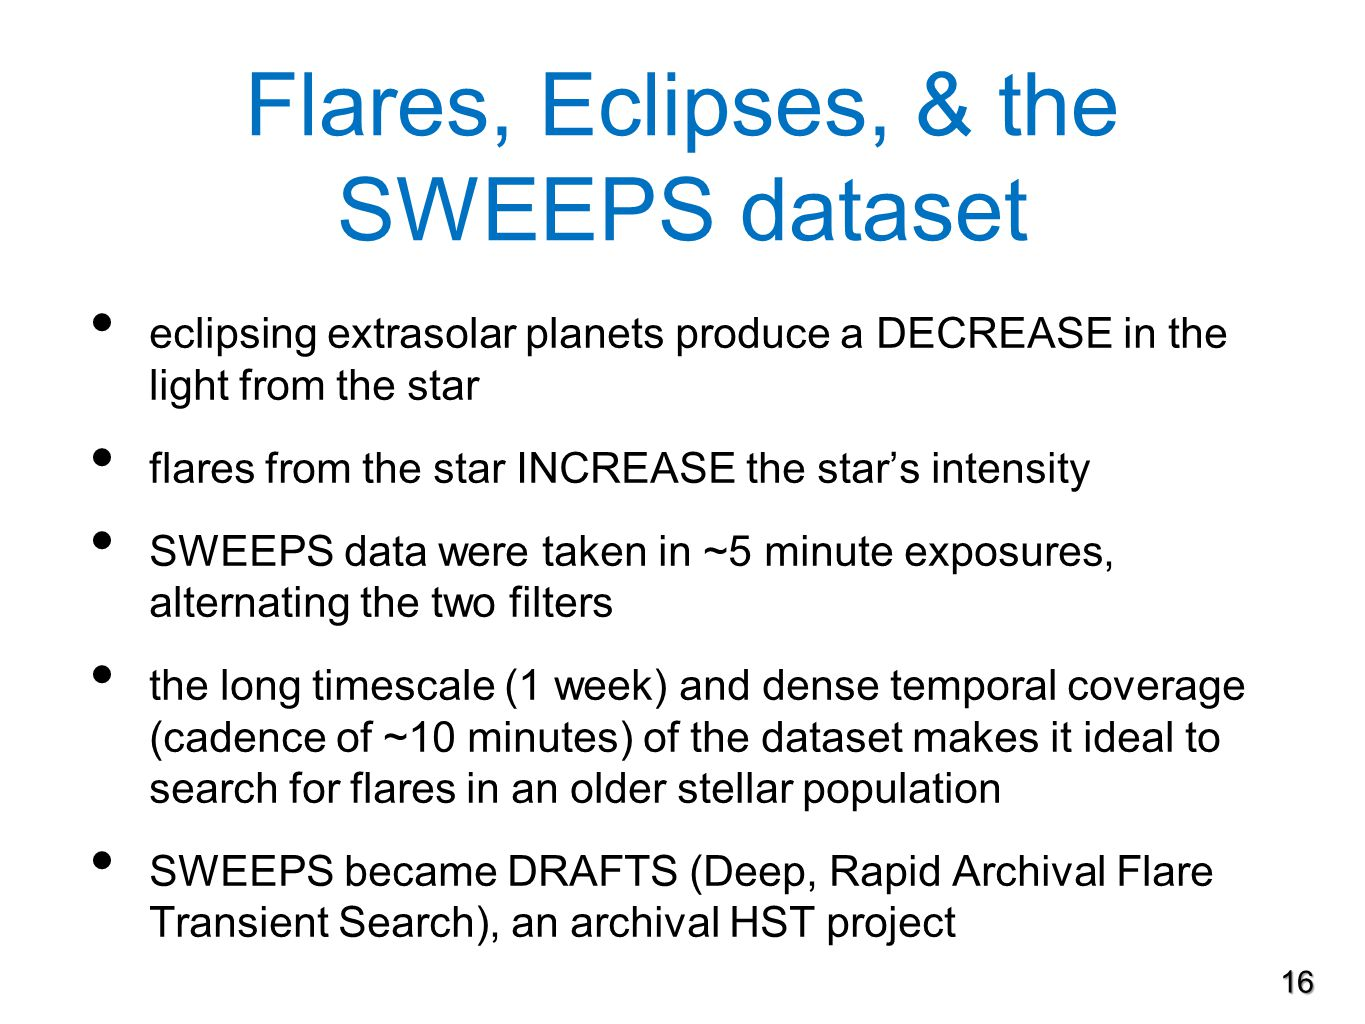 Flares, Eclipses, & the SWEEPS dataset eclipsing extrasolar planets produce a DECREASE in the light from the star flares from the star INCREASE the star's intensity SWEEPS data were taken in ~5 minute exposures, alternating the two filters the long timescale (1 week) and dense temporal coverage (cadence of ~10 minutes) of the dataset makes it ideal to search for flares in an older stellar population SWEEPS became DRAFTS (Deep, Rapid Archival Flare Transient Search), an archival HST project 16